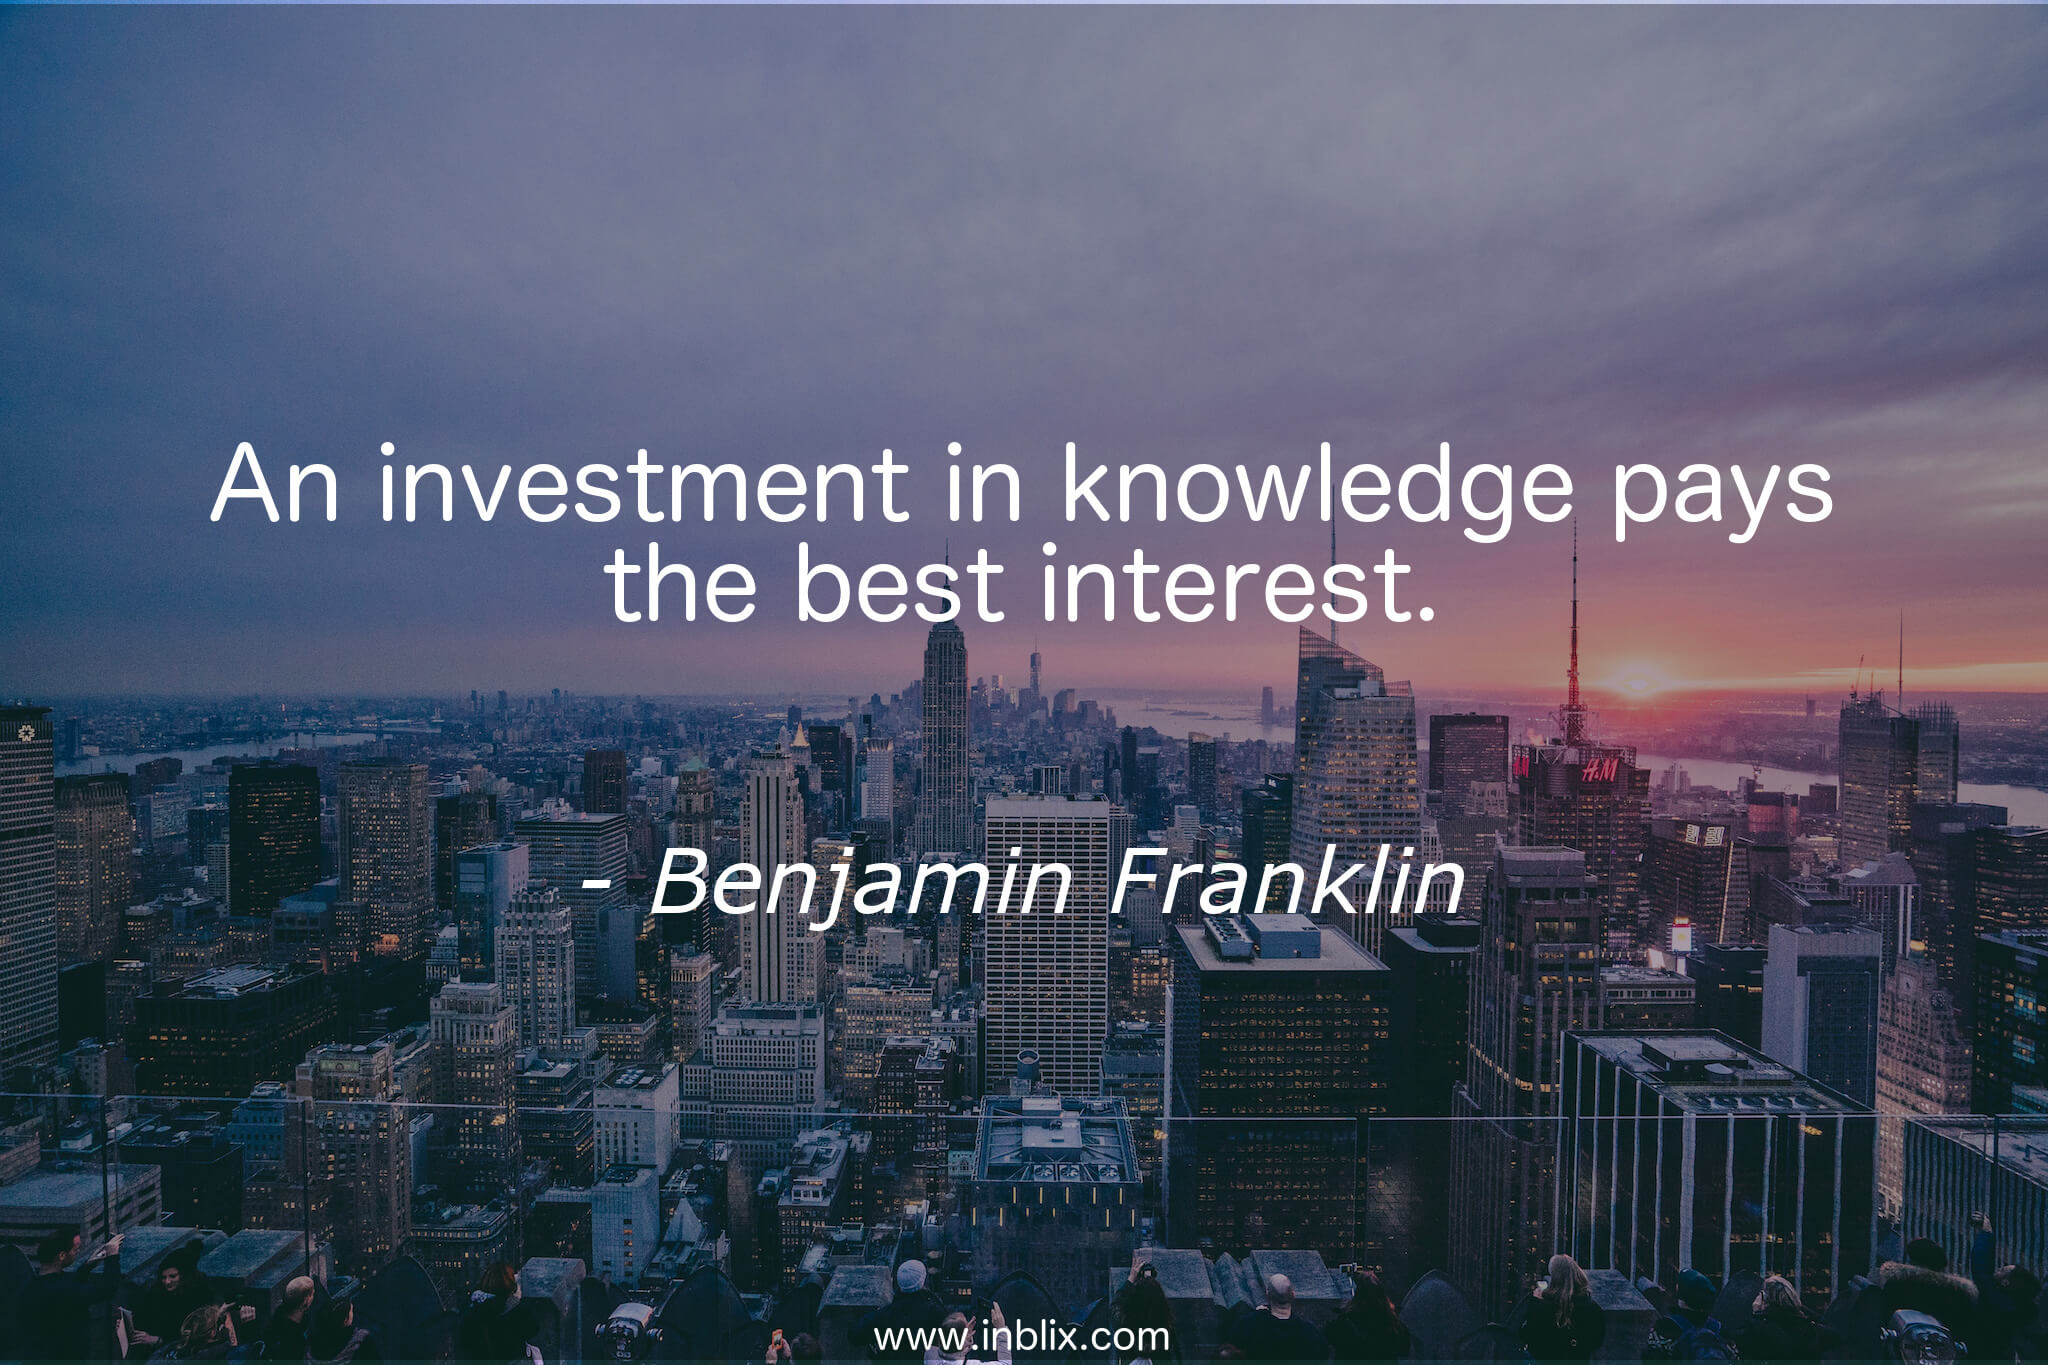 investment-in-knowledge-pays-best-interest-benjamin-franklin